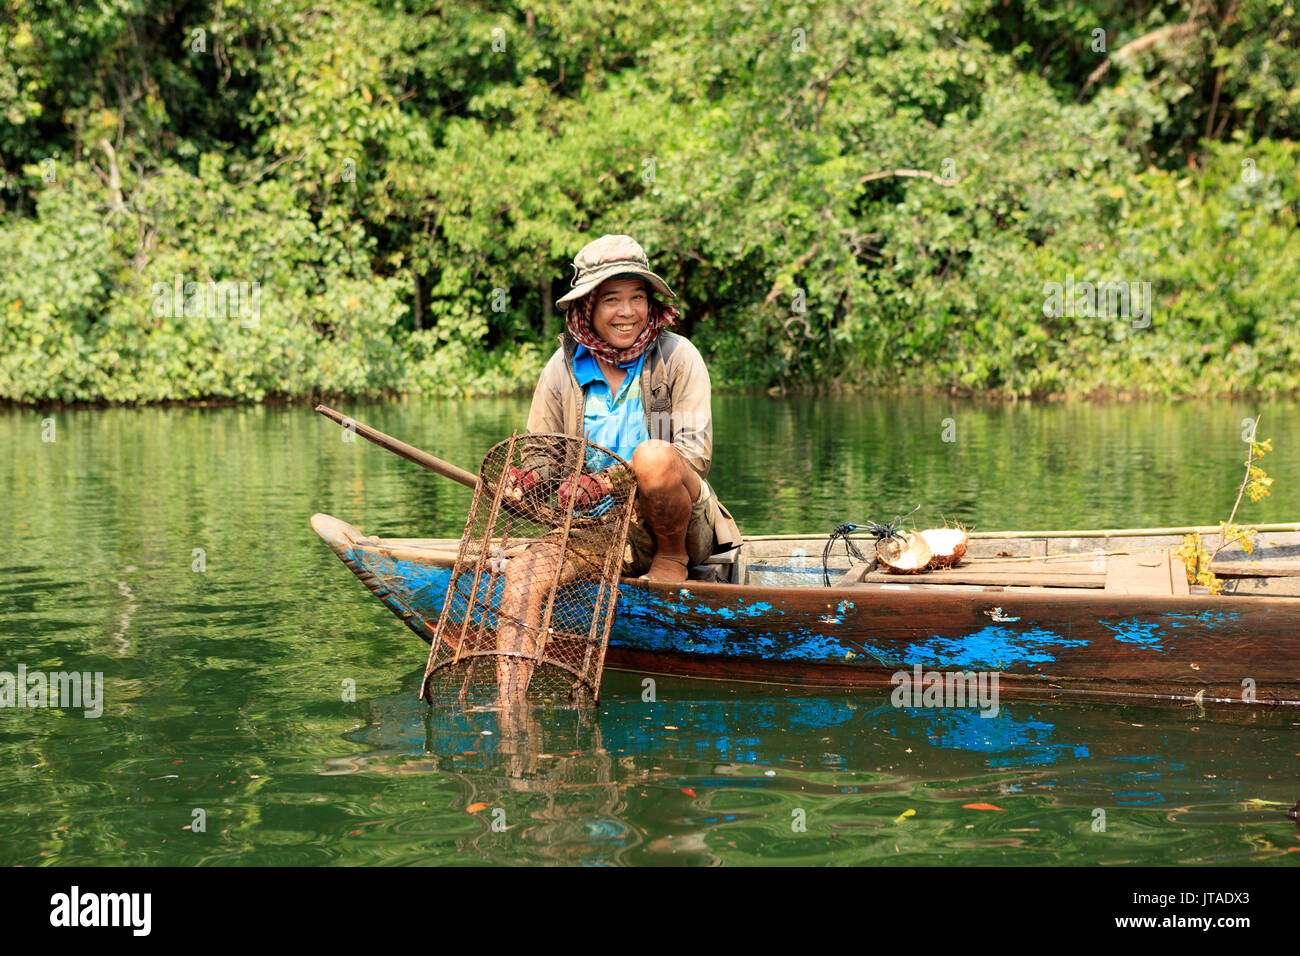 Crayfish fisherman on a tributary of the Phipot River in the Cardamom mountains, Koh Kong, Cambodia, Indochina, - Stock Image